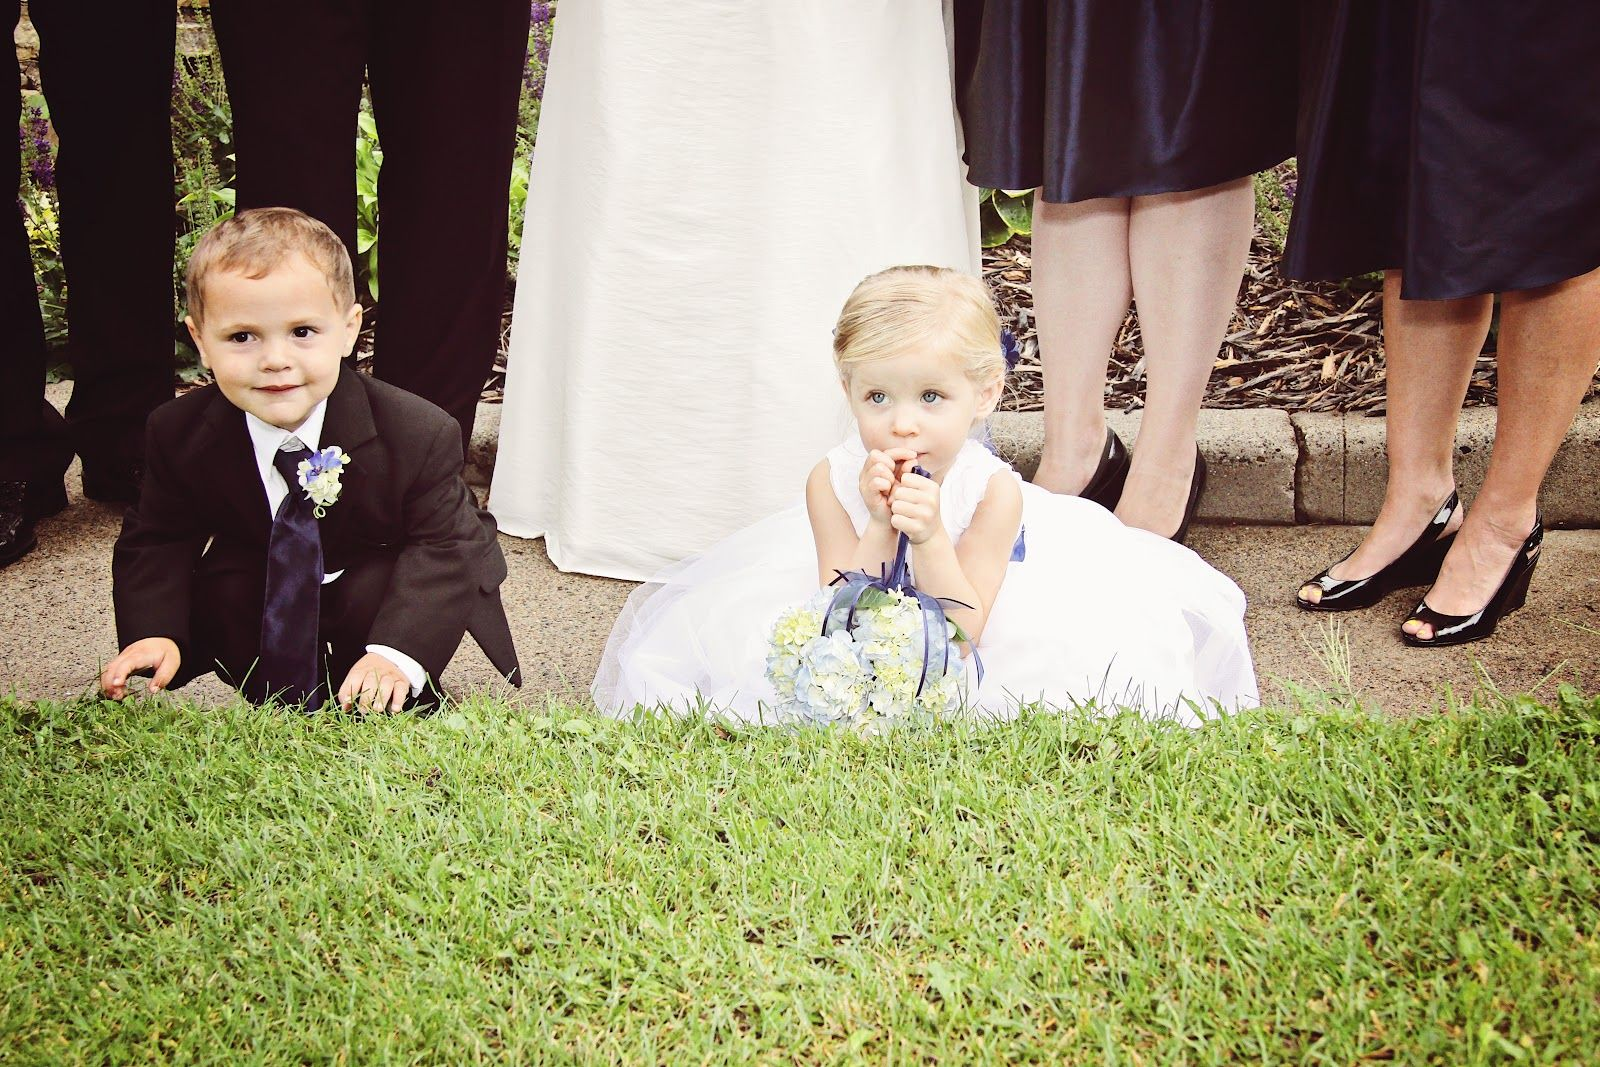 Flower Girl and Ring Bearer in Adorable Selfinitiated